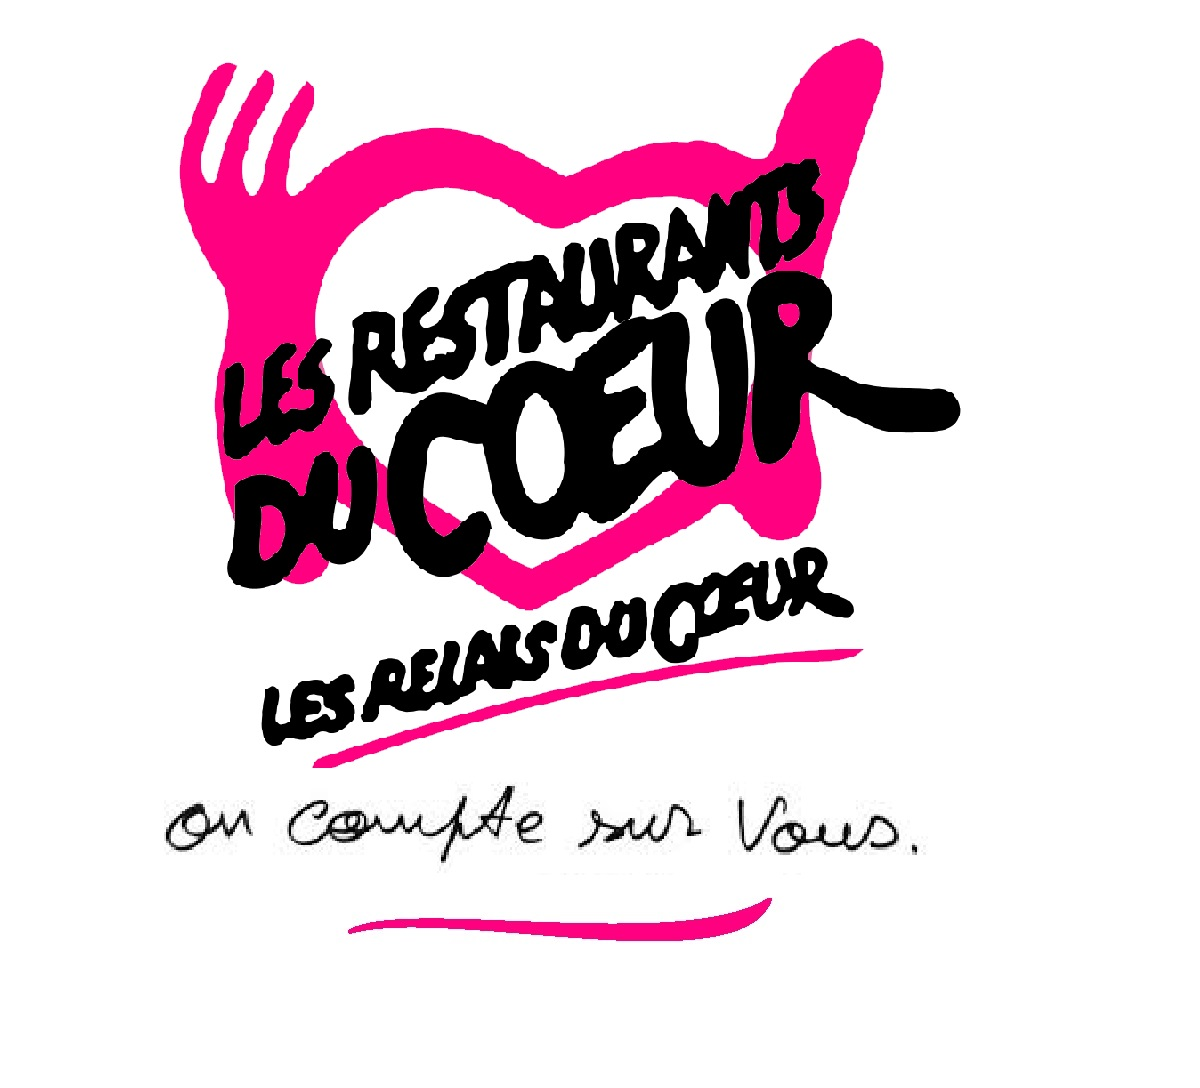 Restos du coeur - we need you.